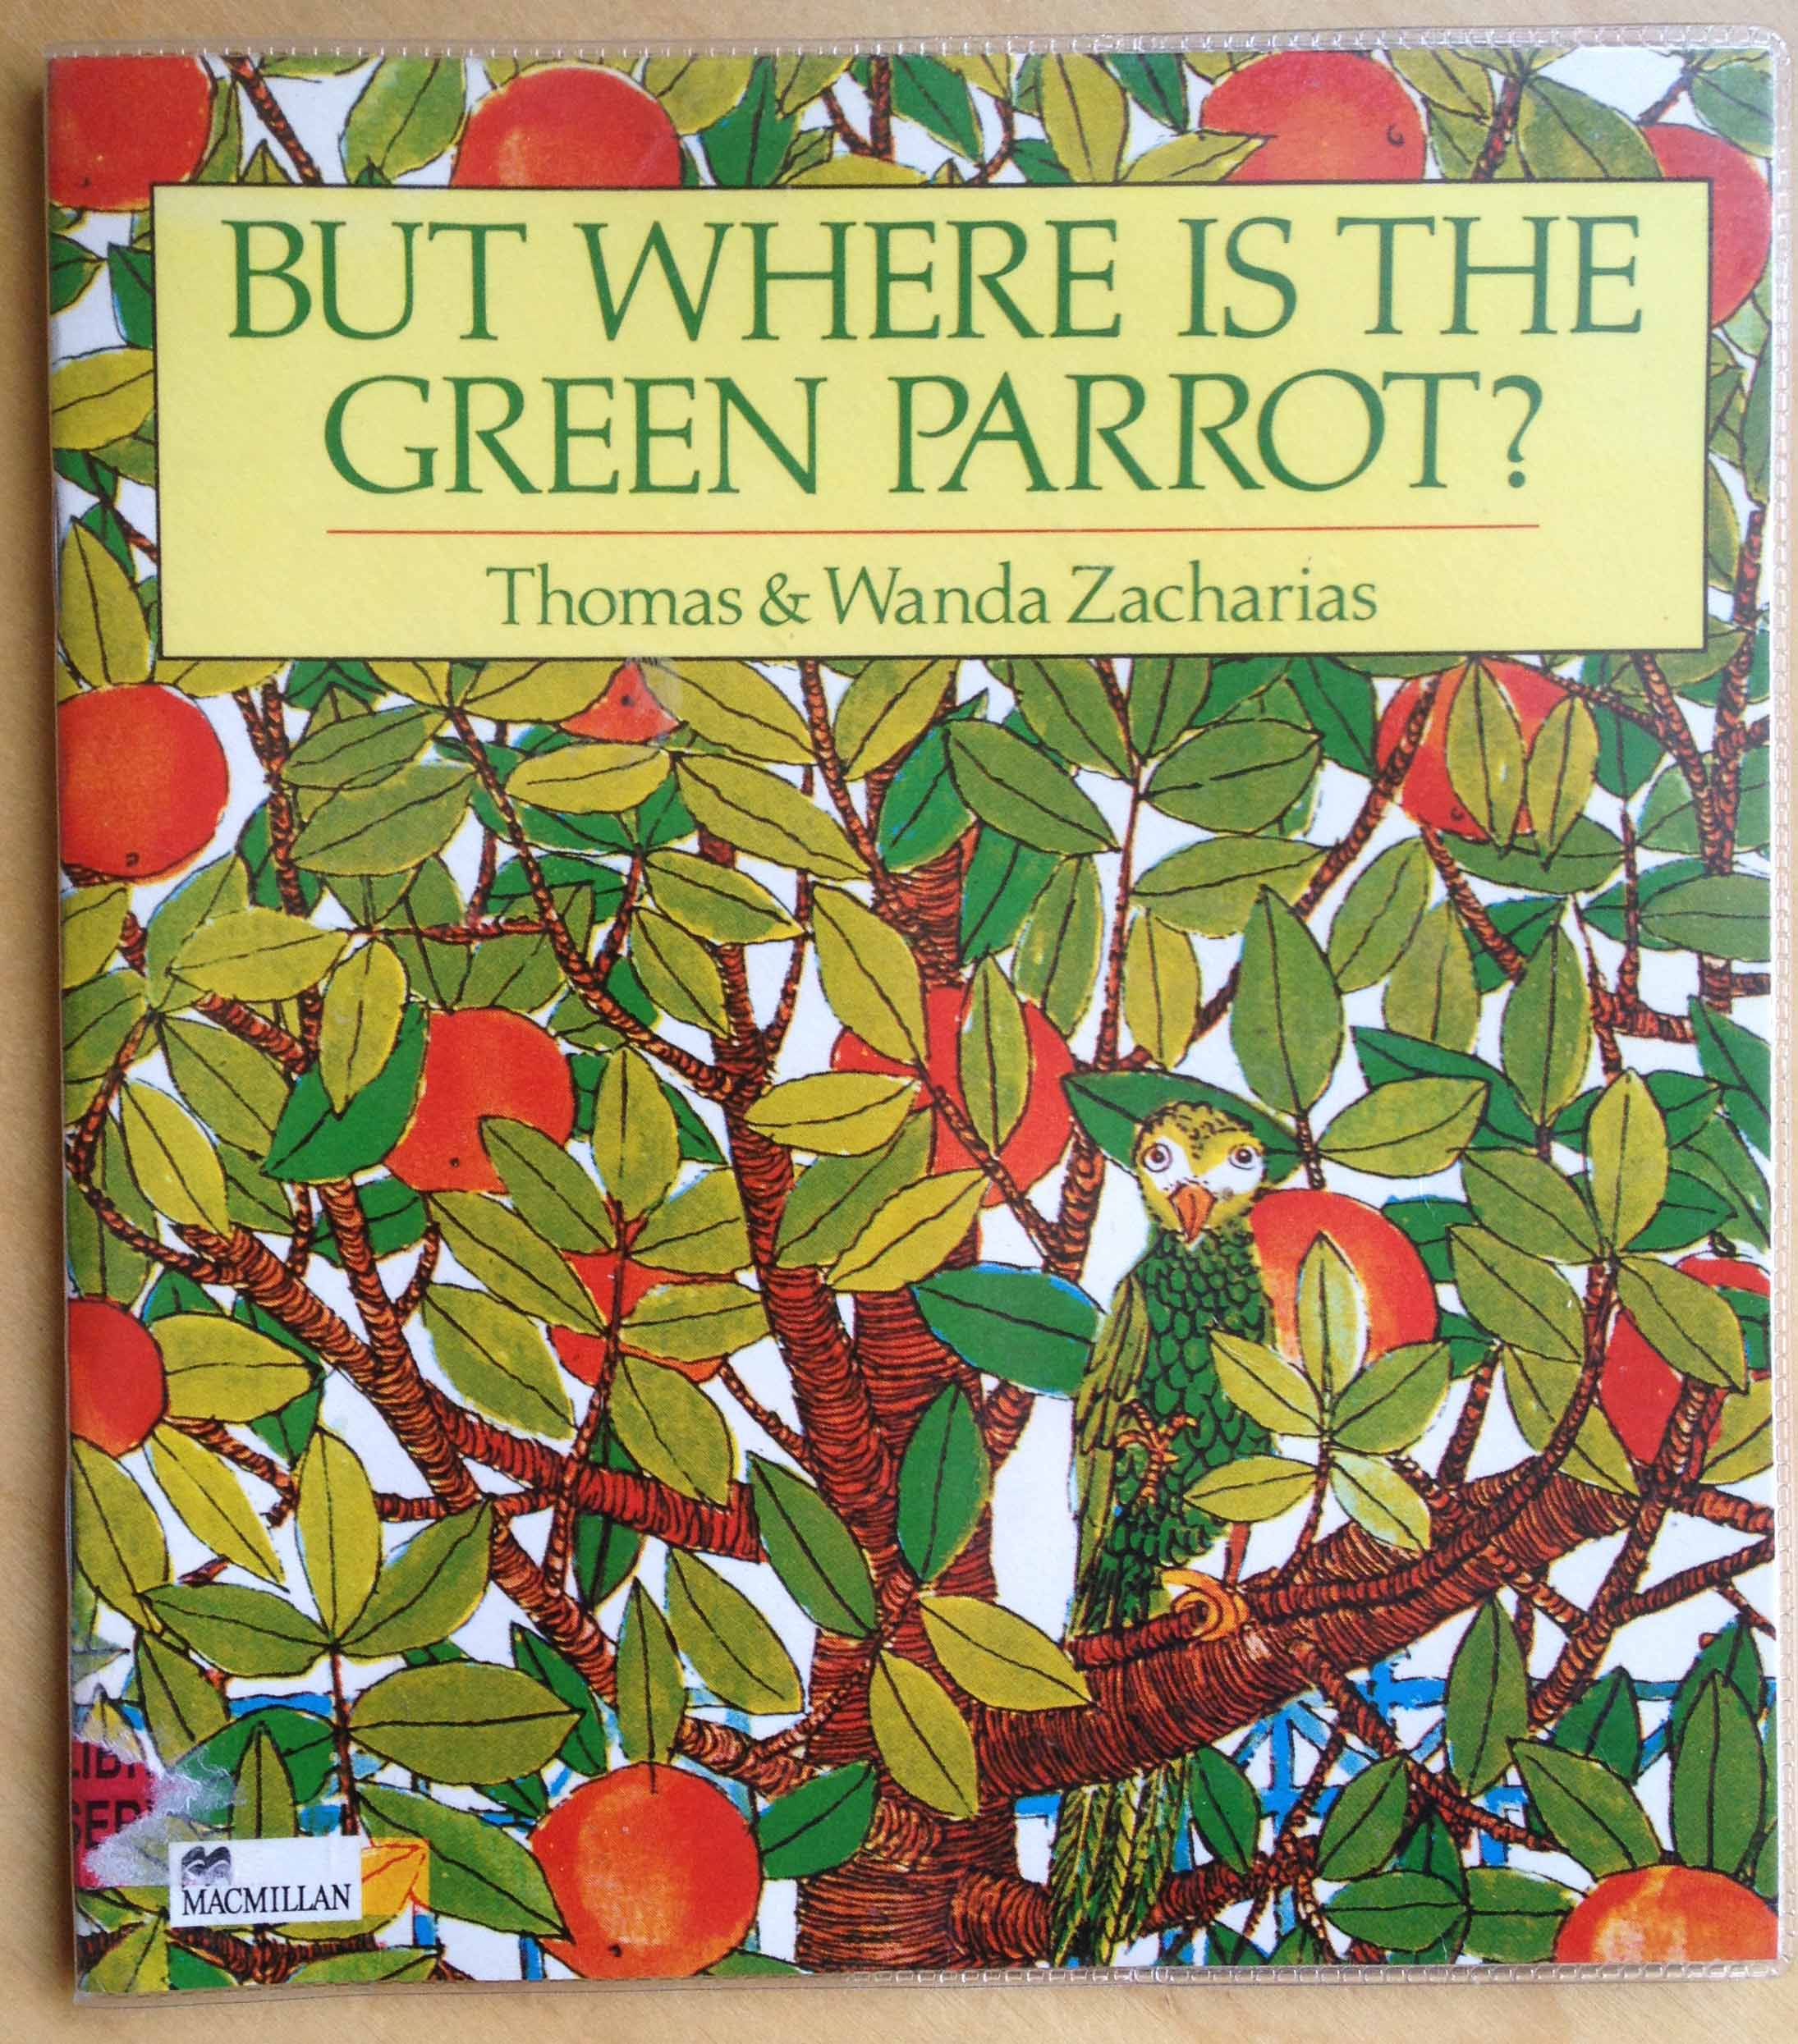 But Where is the Green Parrot?  by Thomas and Wanda Zacharias